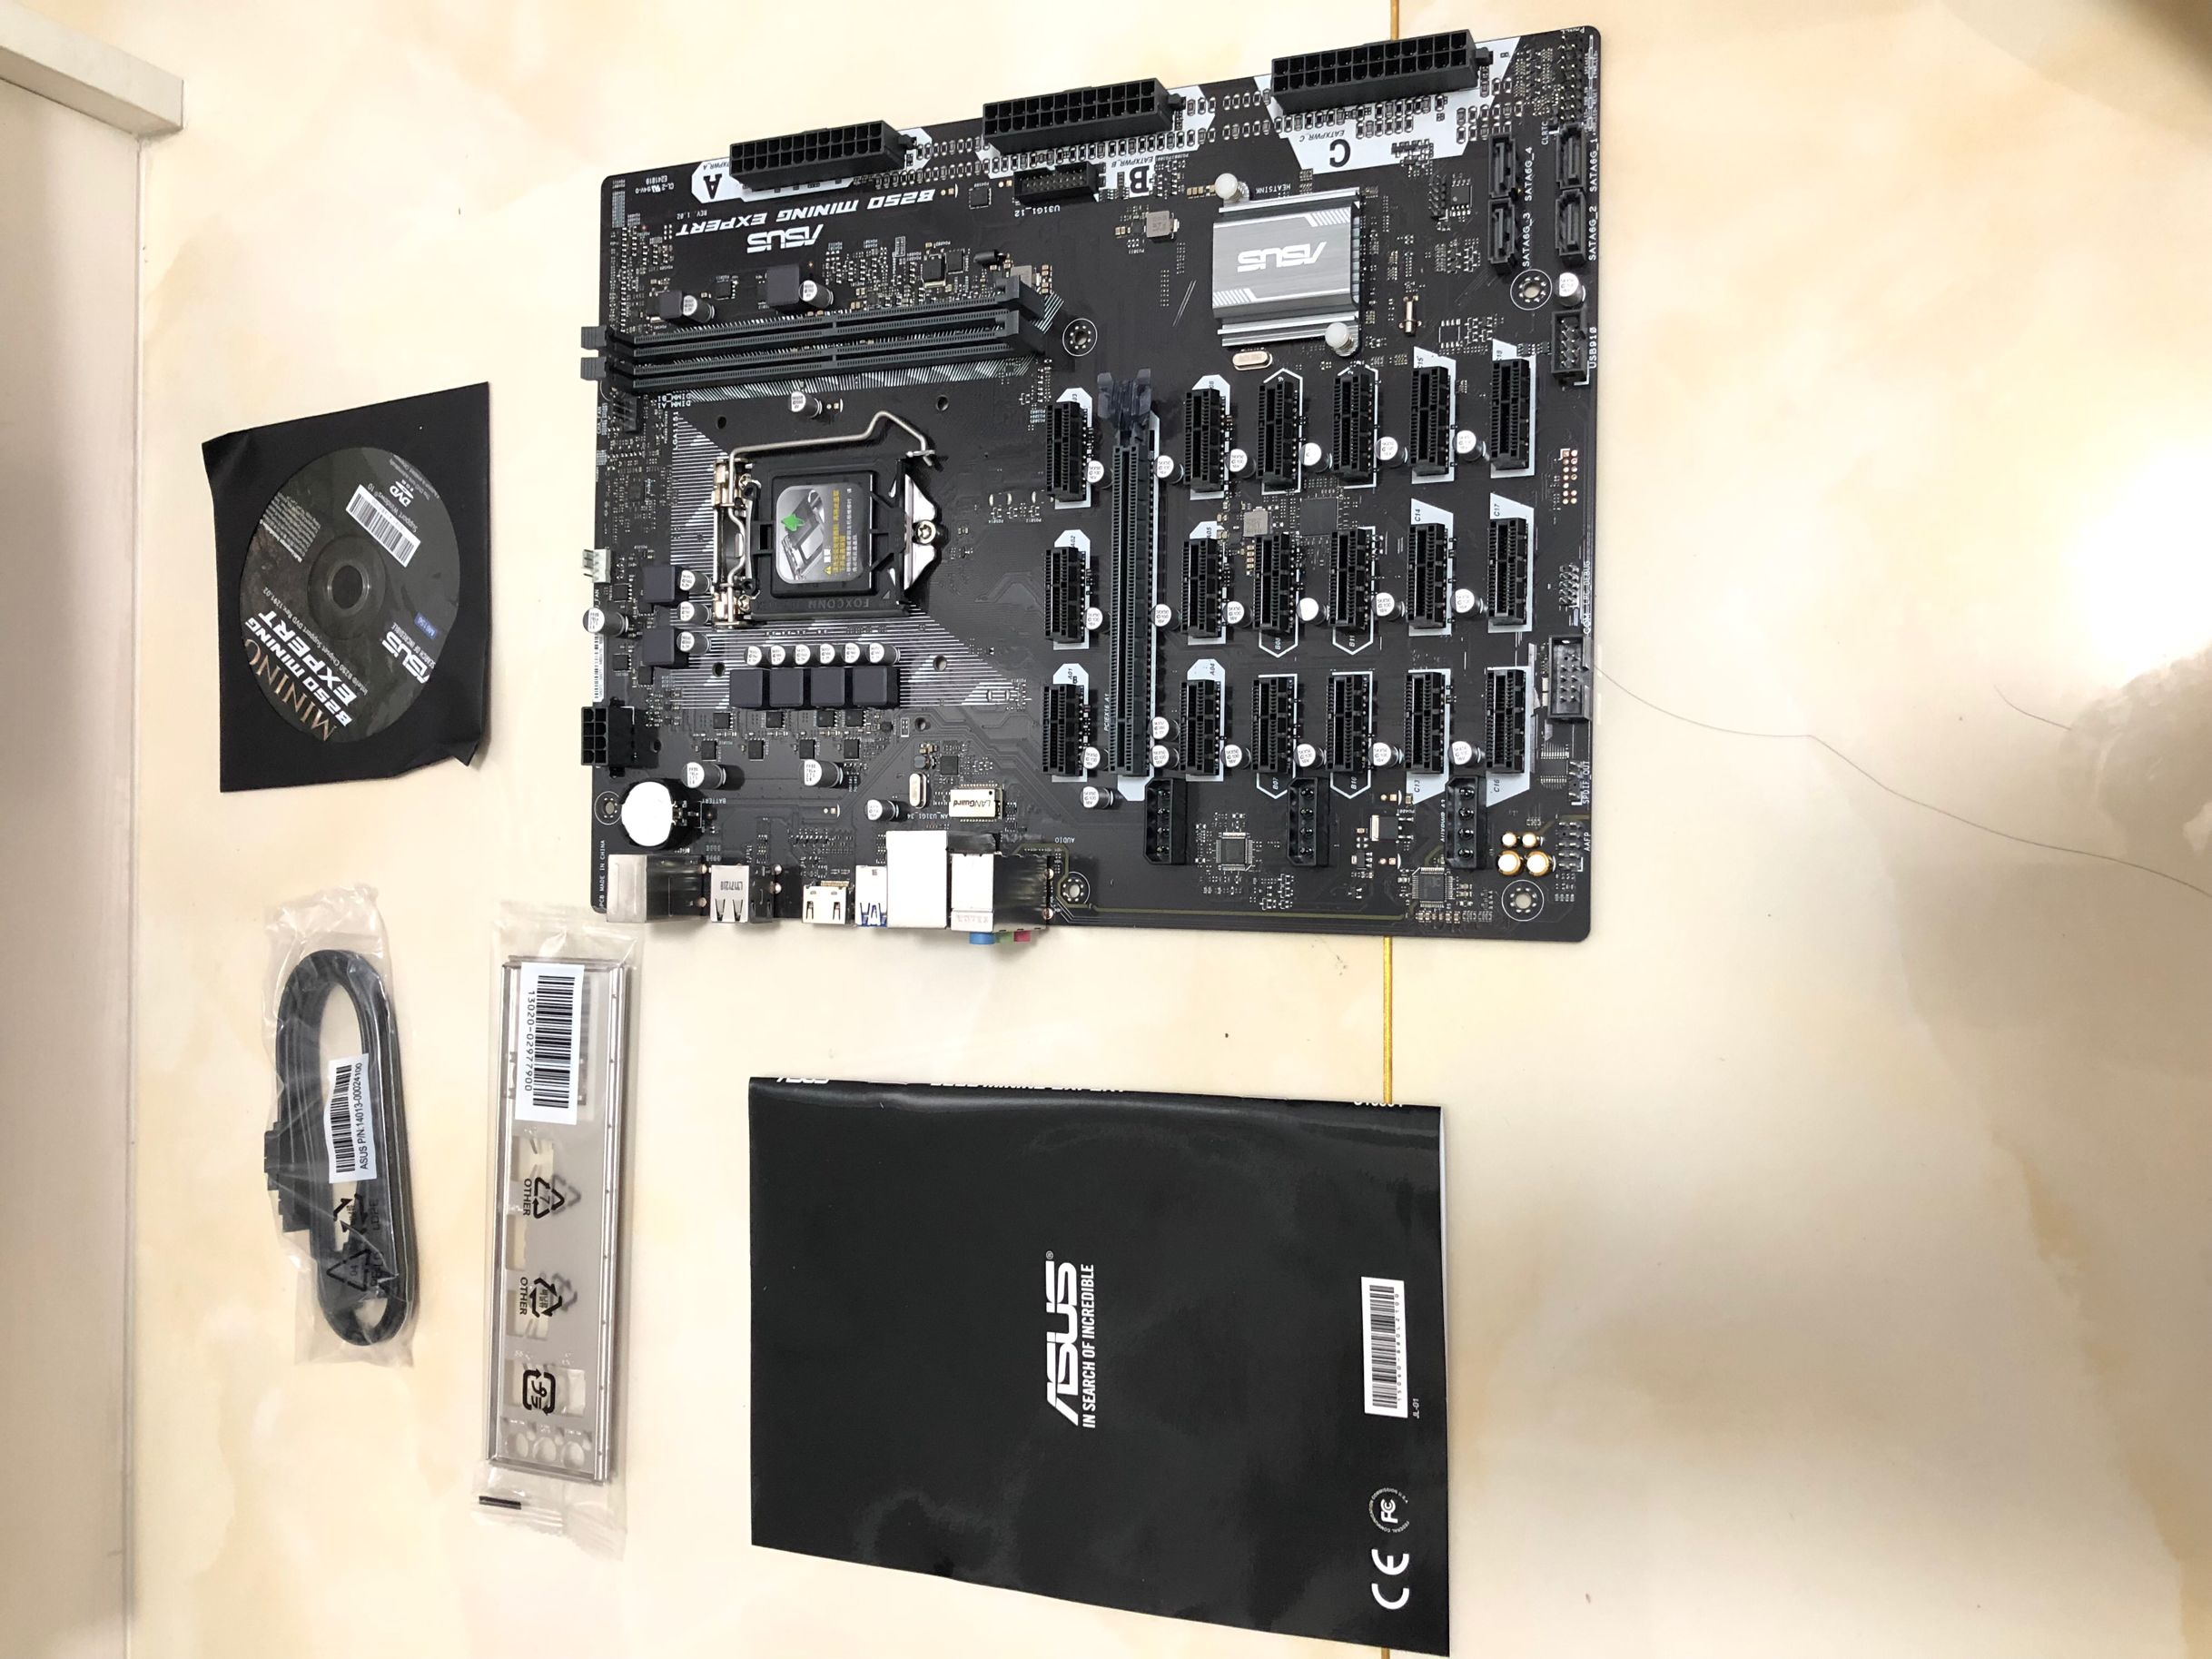 ASUS B250 MINING EXPERT DDR4 LGA 1151 19 Graphics Board 32GB B250 Desktop Motherboard